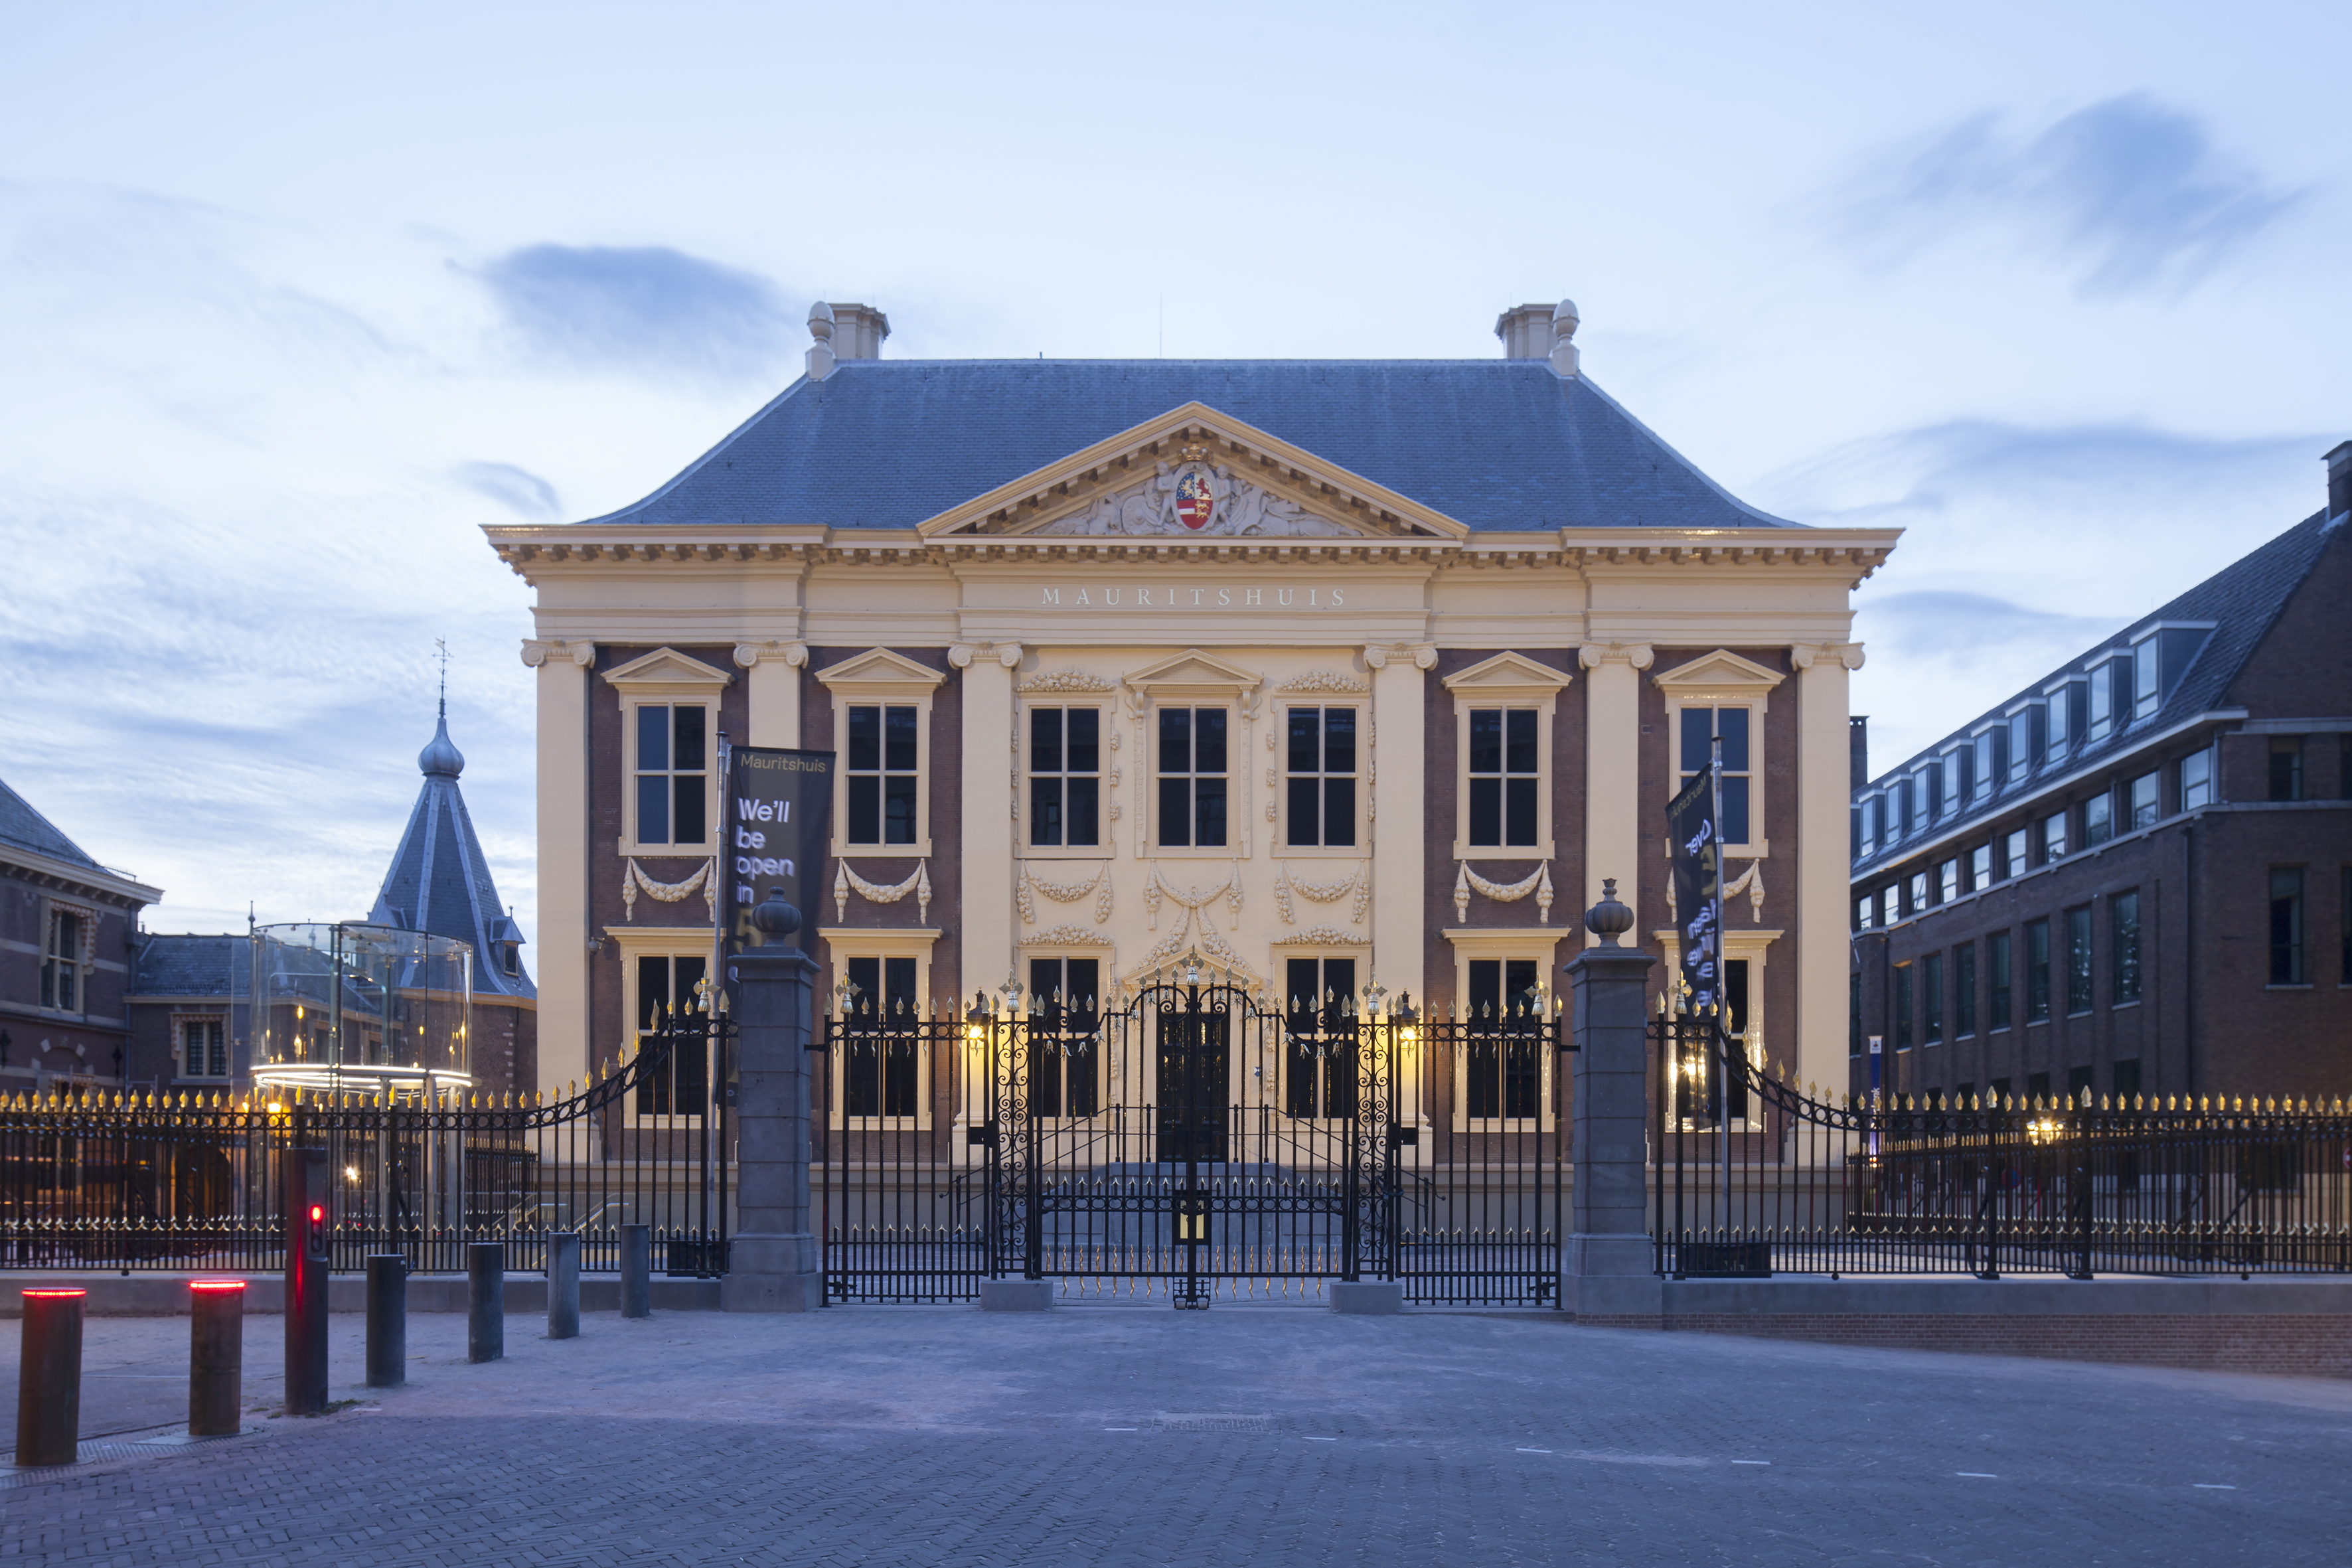 ve-may-bay-di-ha-lan-Mauritshuis